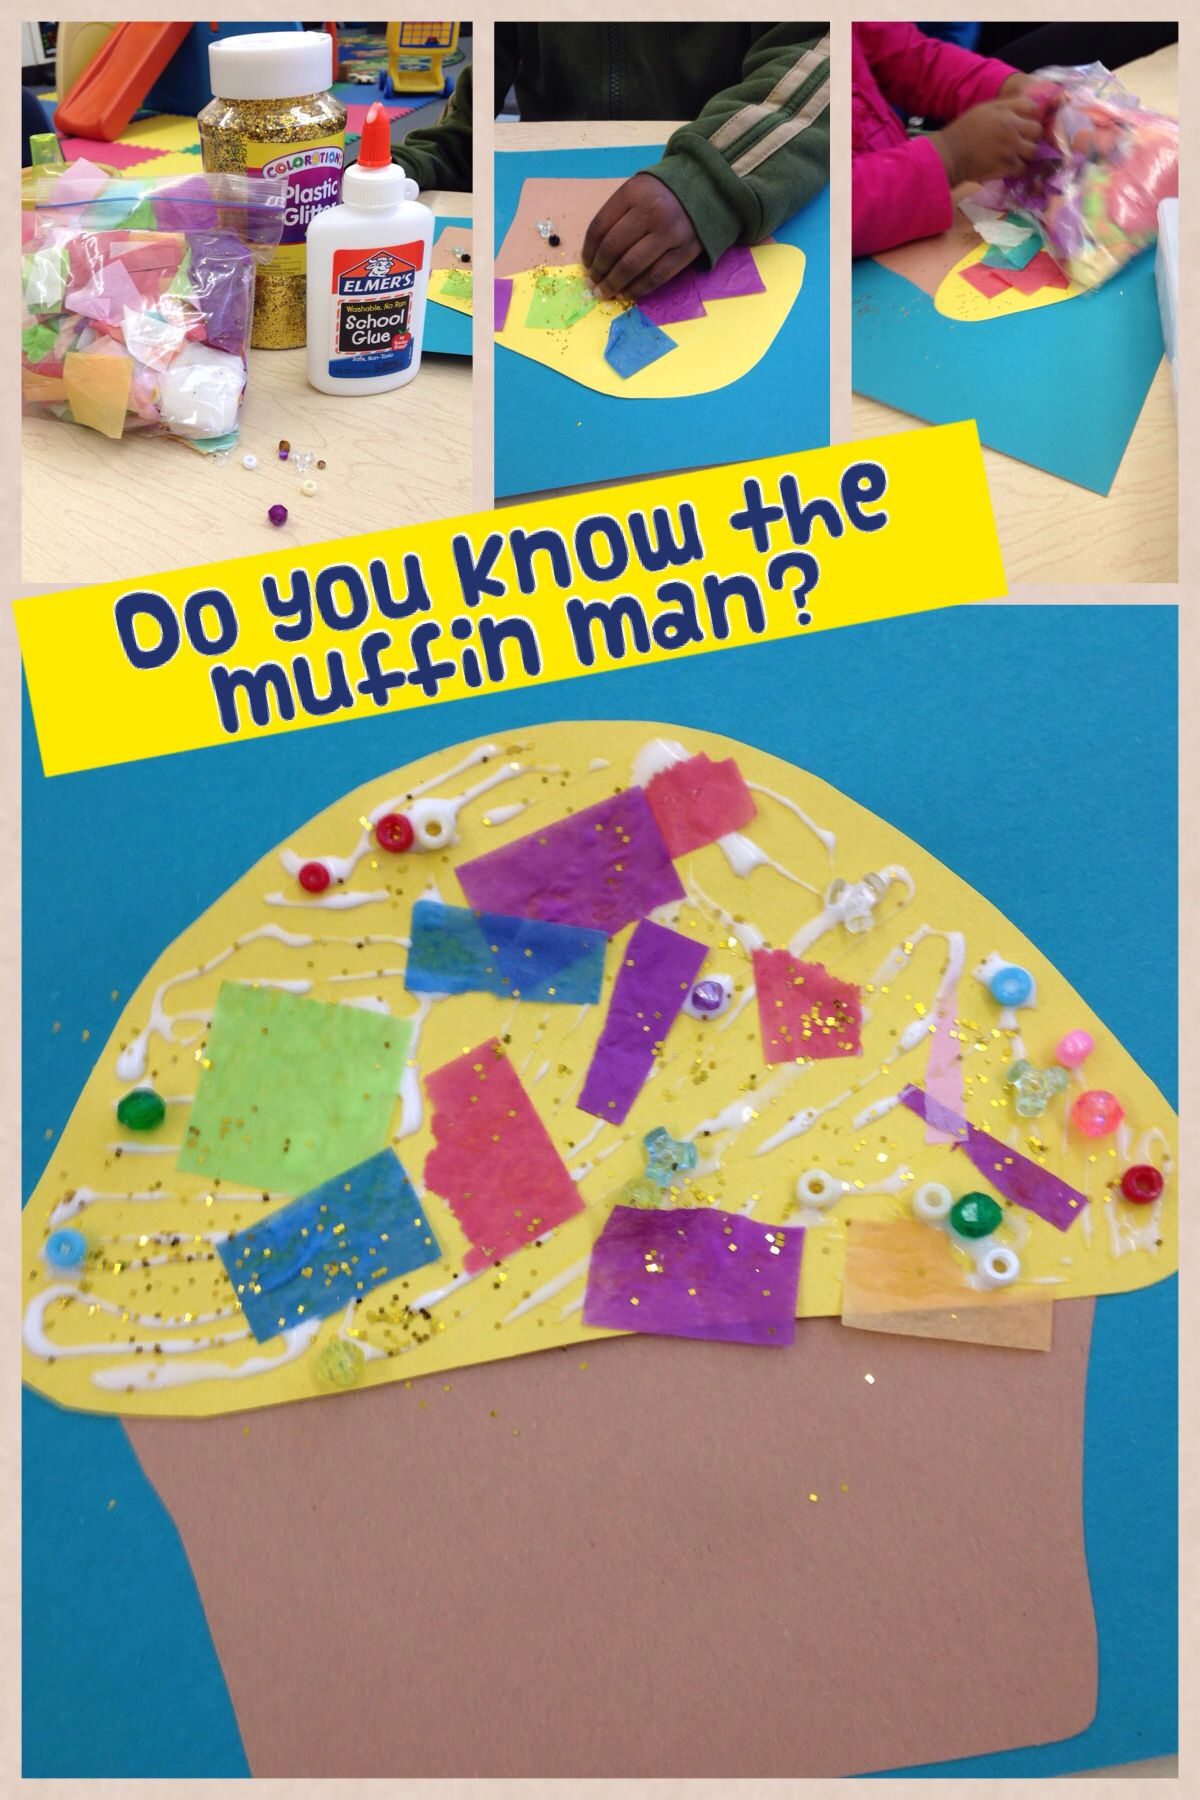 We Decorated A Paper Muffin For Our Nursery Rhyme Theme Do You Know